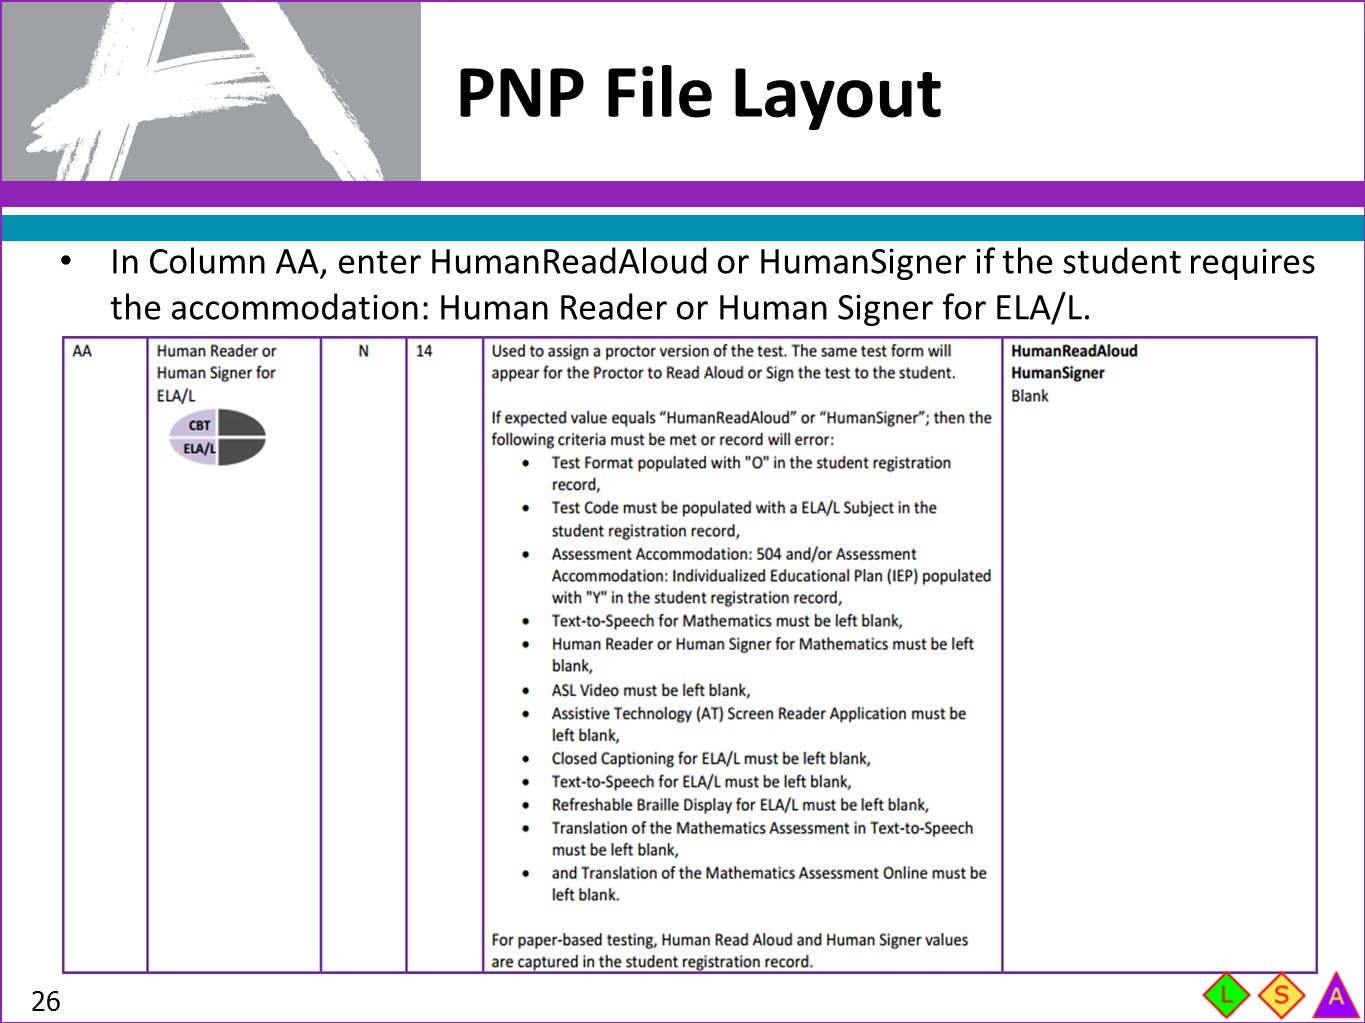 PNP File Layout In Column AA, enter HumanReadAloud or HumanSigner if the student requires the accommodation: Human Reader or Human Signer for ELA/L.